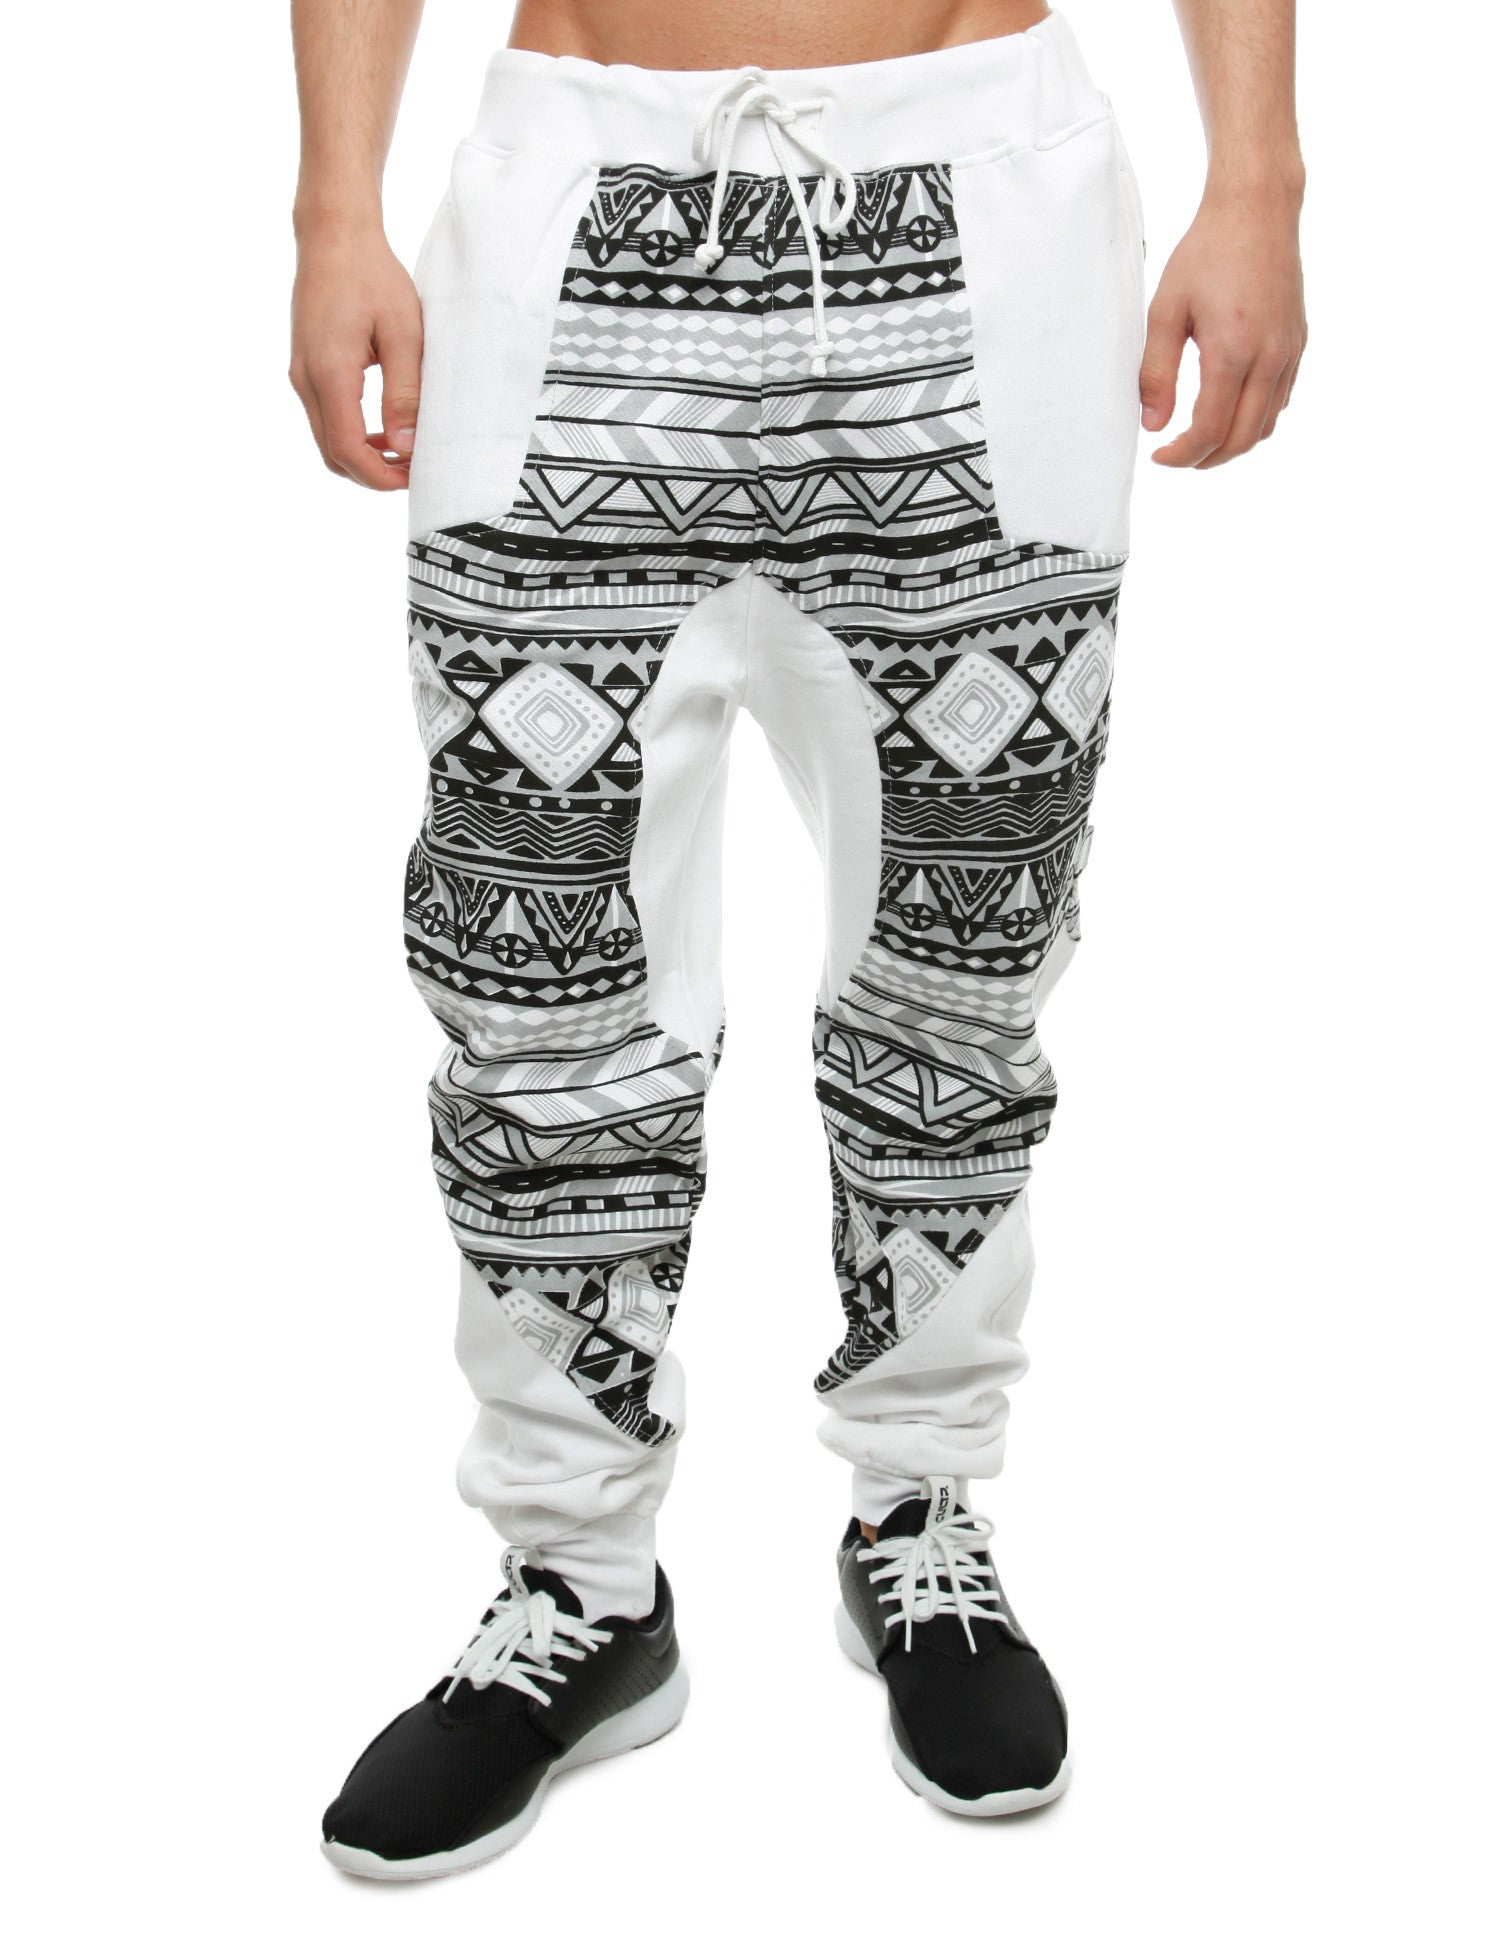 Imperious ´Aztec´ Sweatpant FP29 White